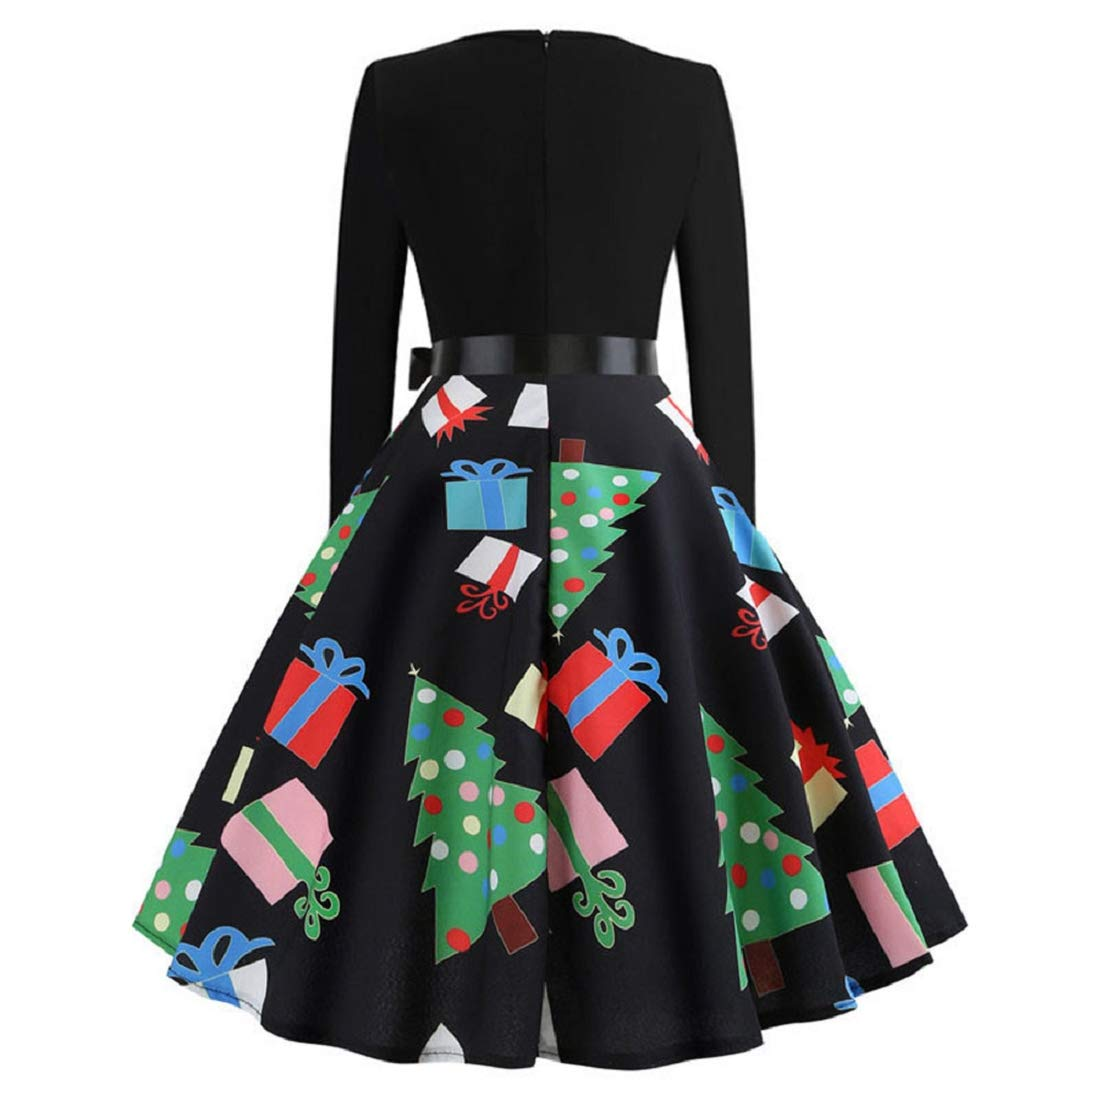 Bkolouuoe Womens Christmas Printed Party Dress Long Sleeve Round Neck Casual Belt Evening Cocktail Swing Dresses